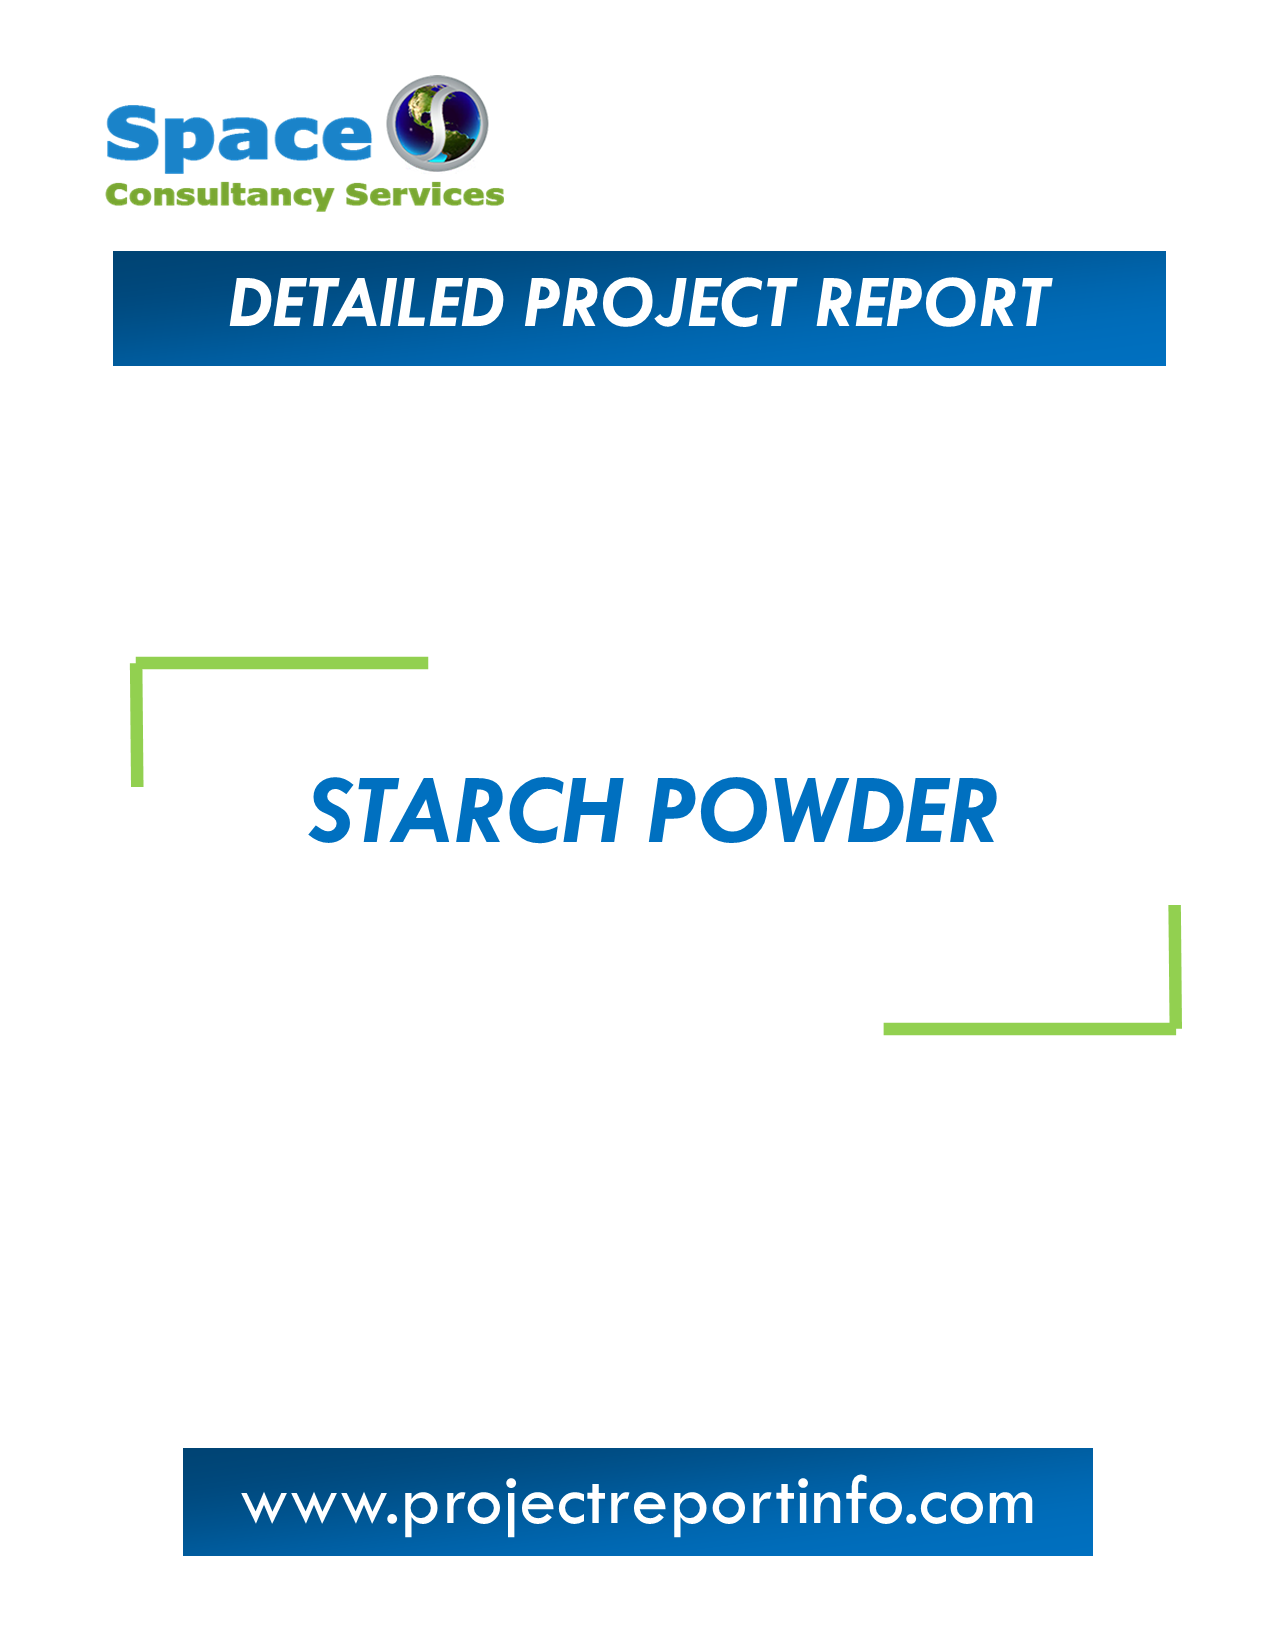 Project Report on Starch Powder Manufacturing